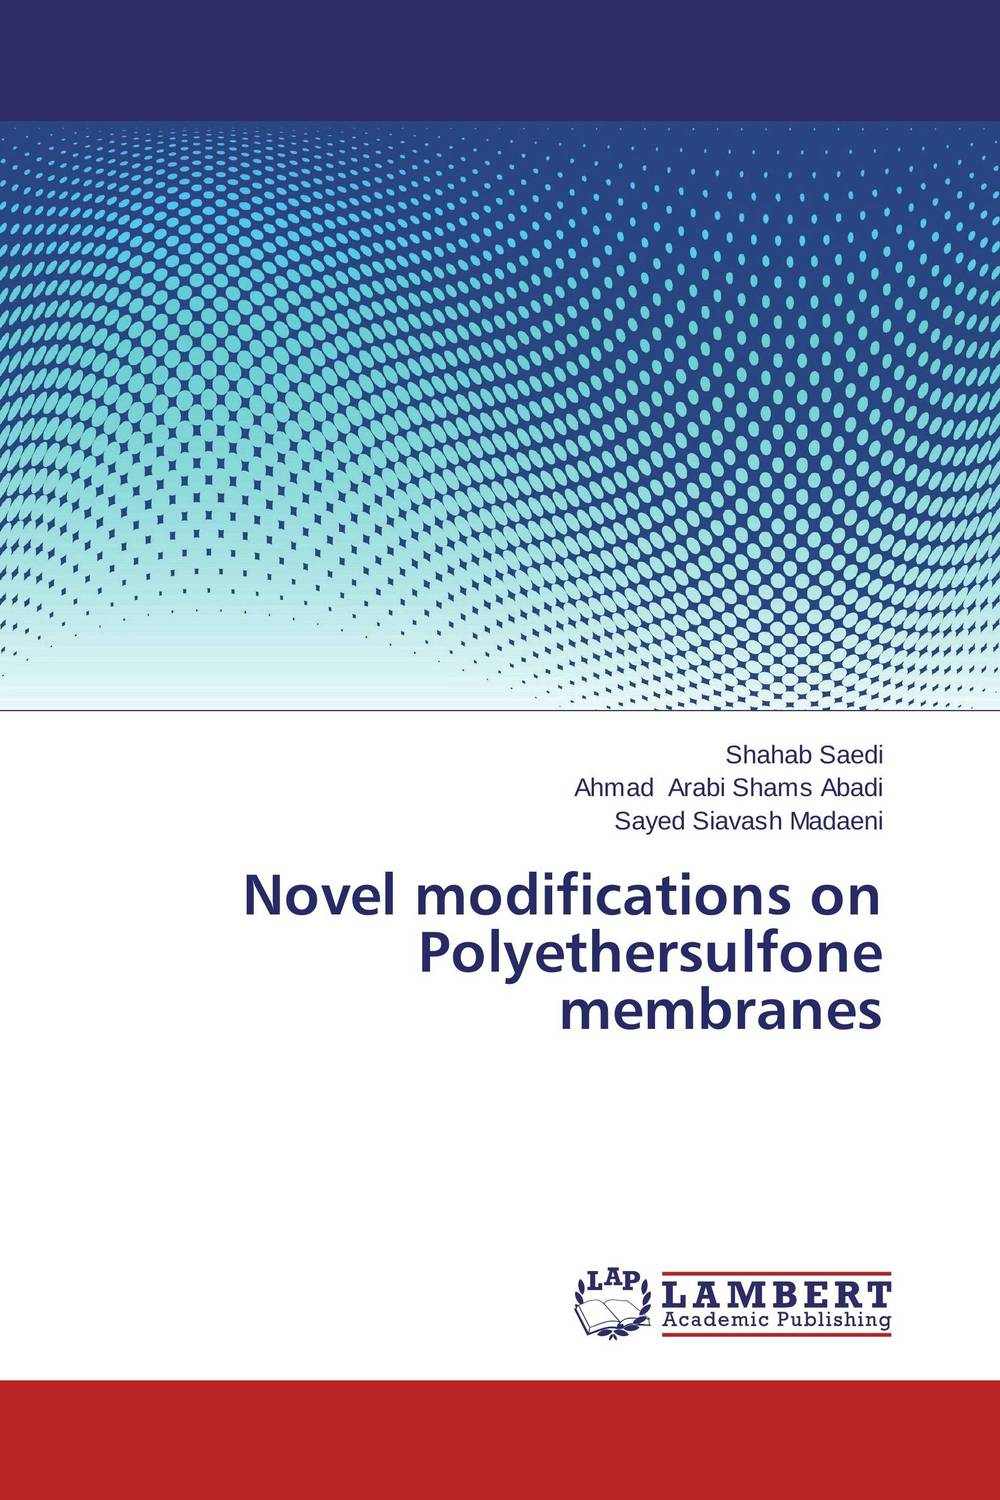 Novel modifications on Polyethersulfone membranes